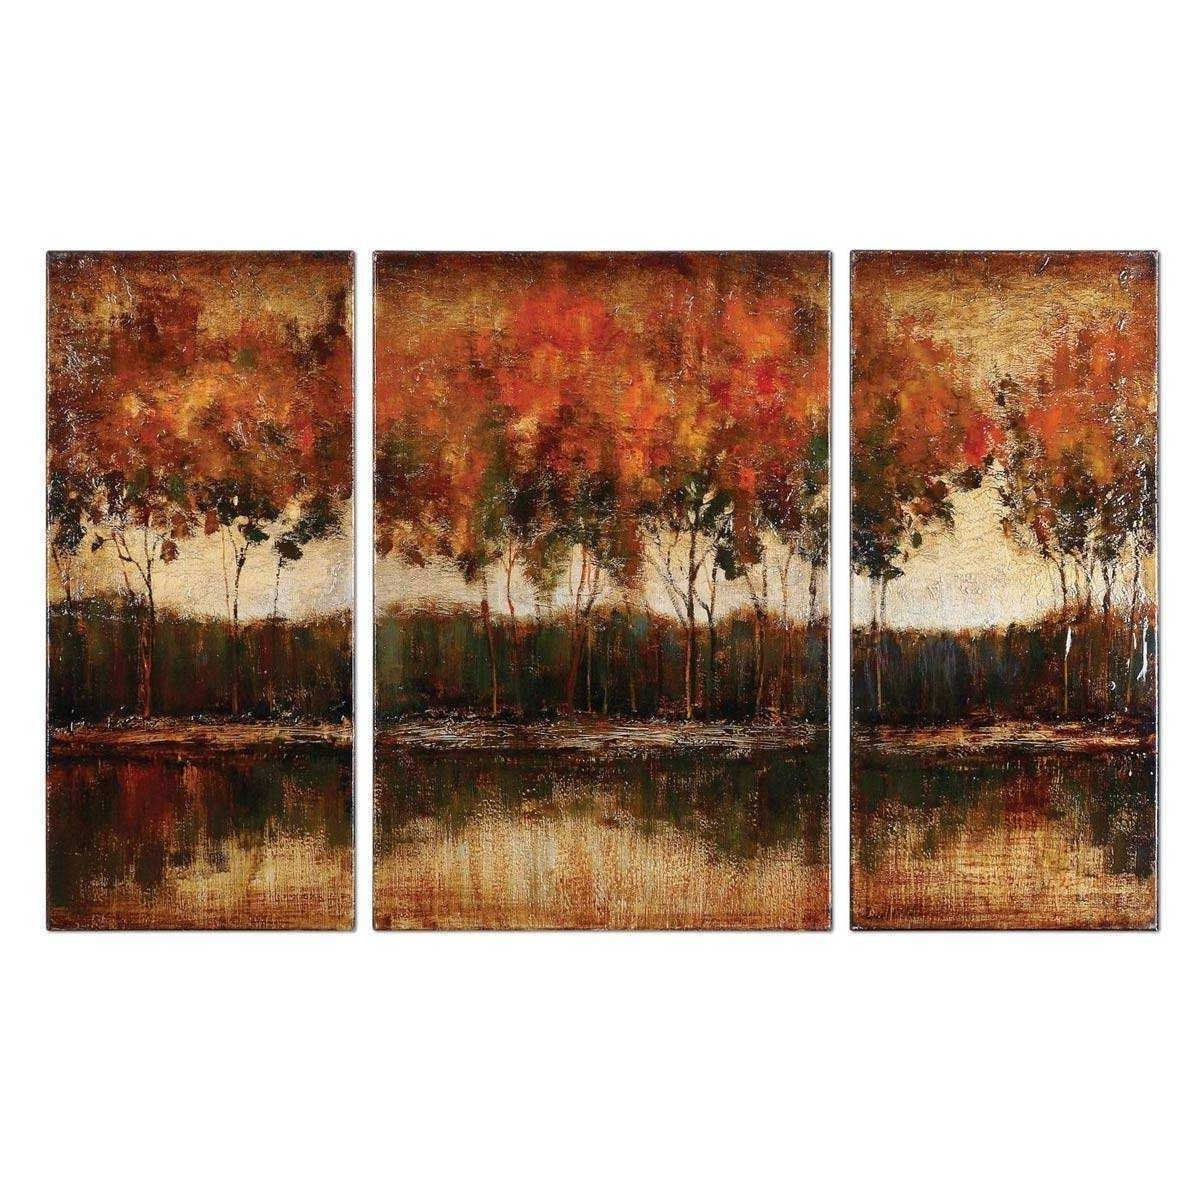 Big Canvas Art Fresh 15 Best Collection Of Canvas Wall Art Sets Intended For Most Recent Canvas Wall Art Sets (View 10 of 15)